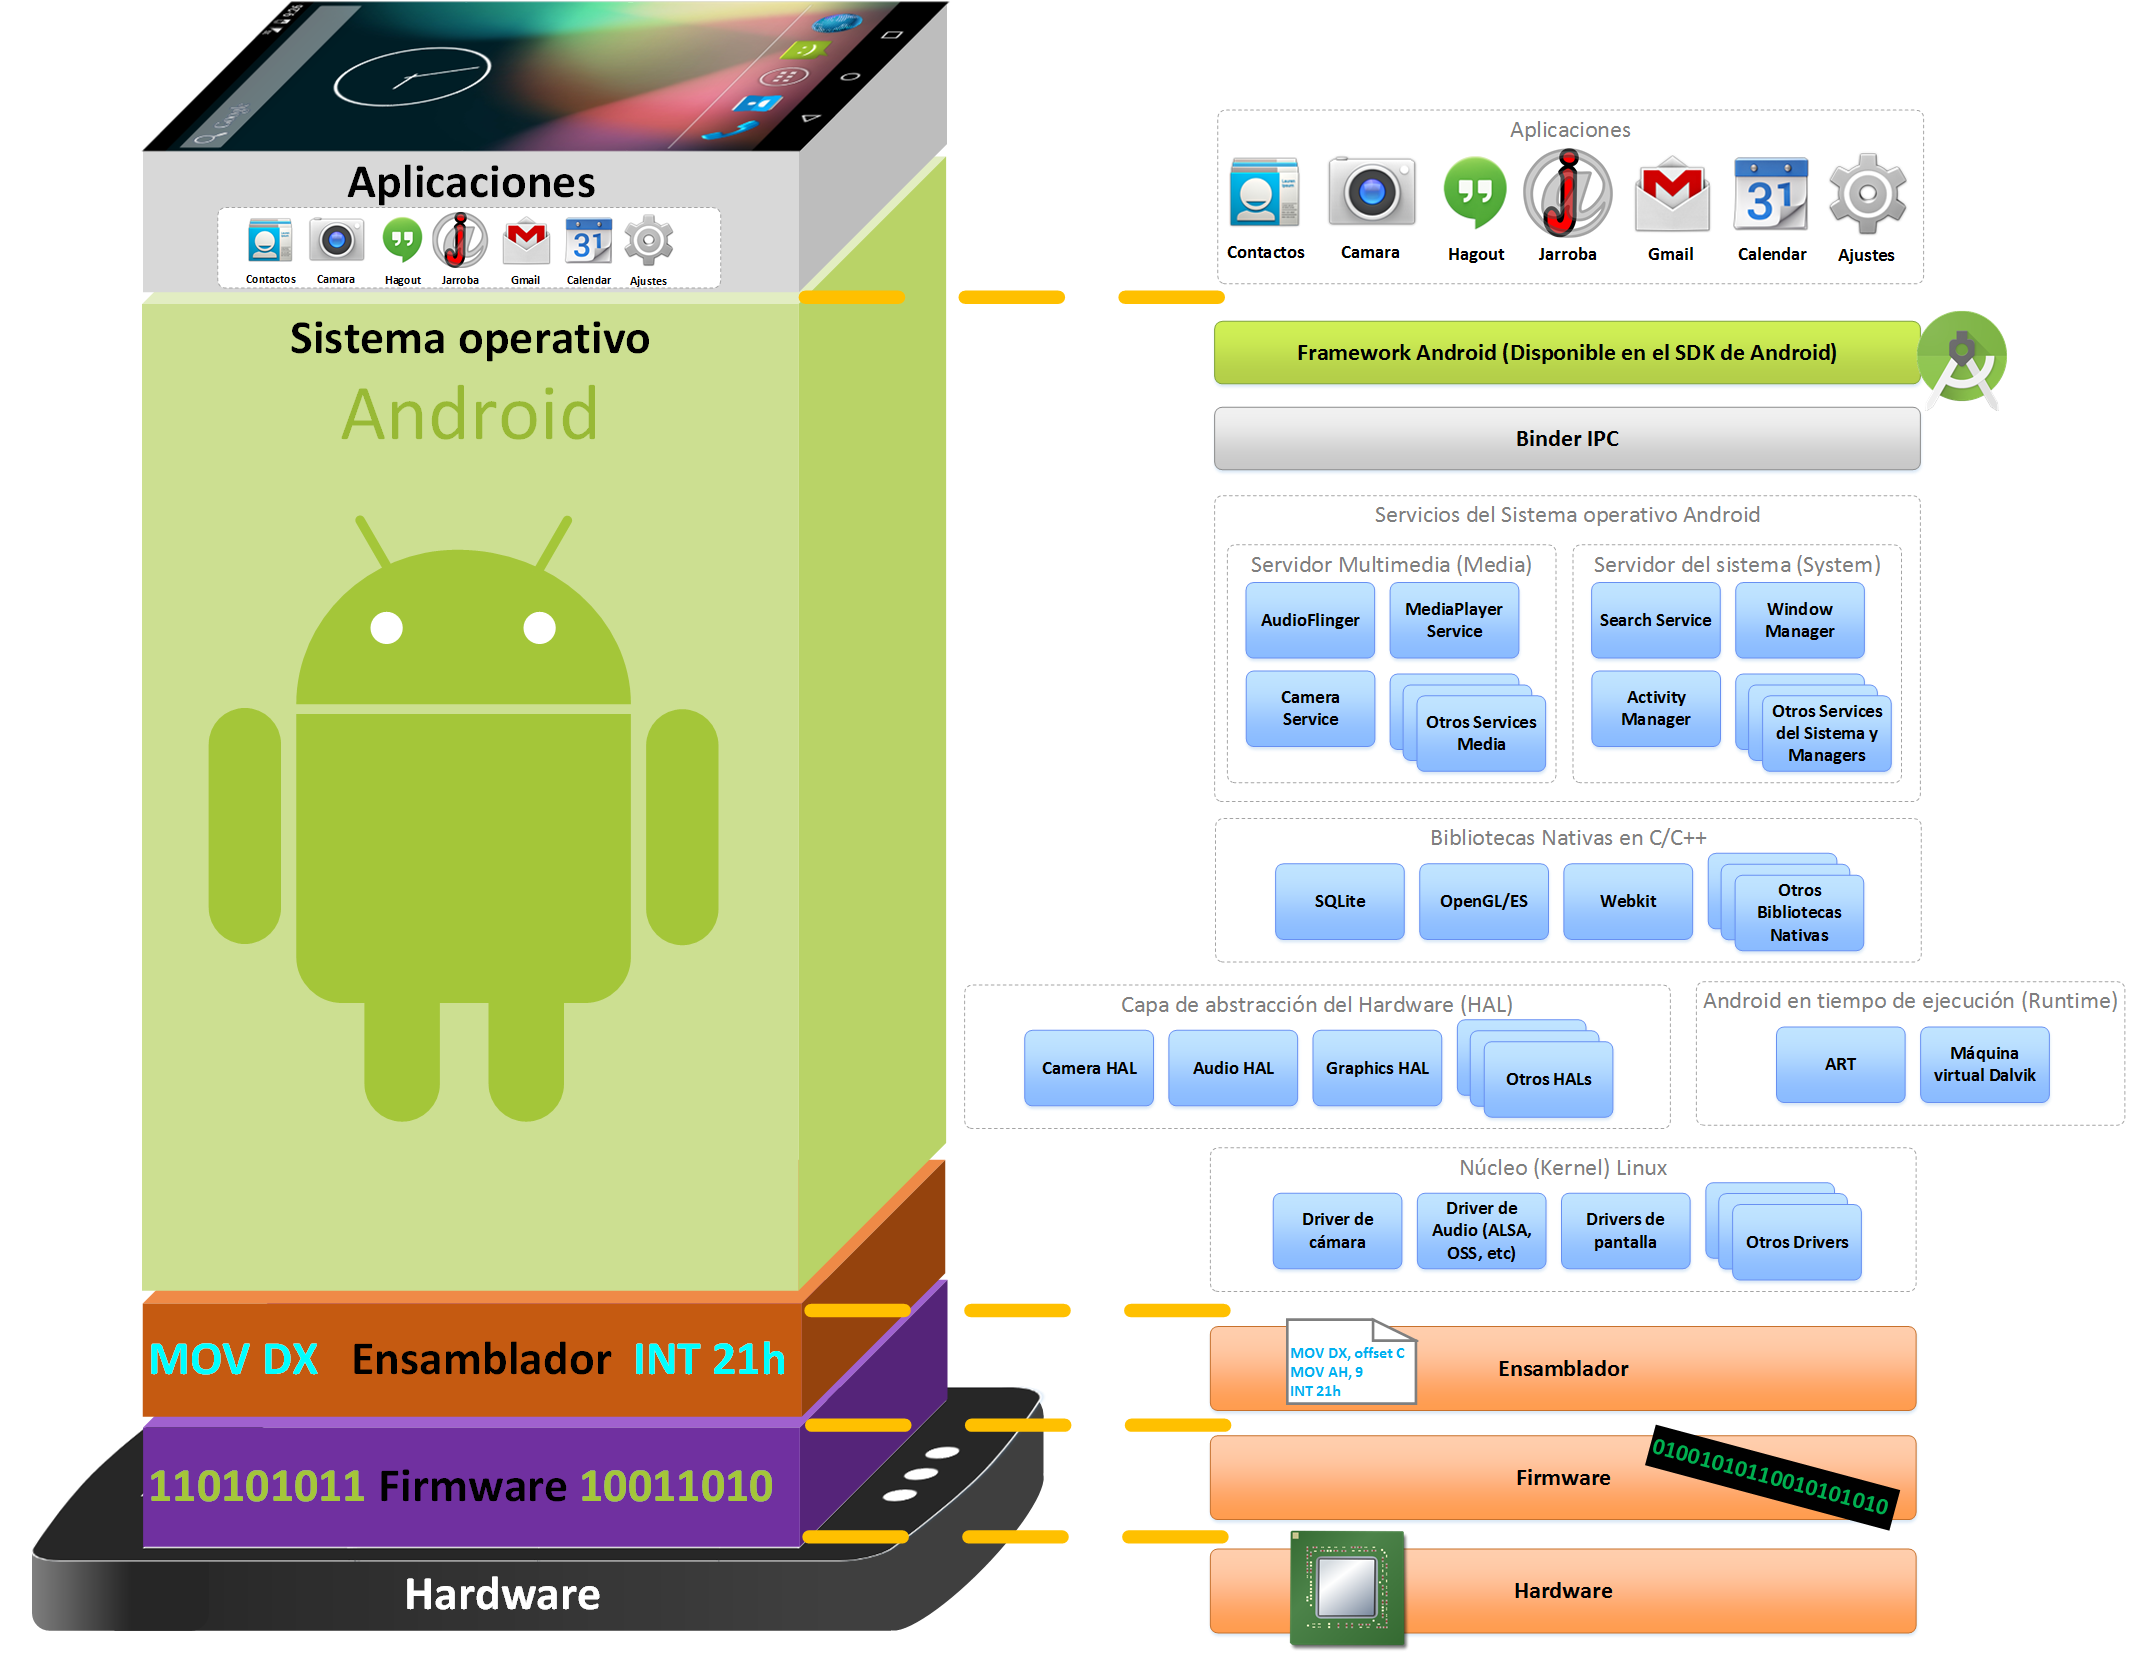 Art Vs Dalvik Arquitectura Android